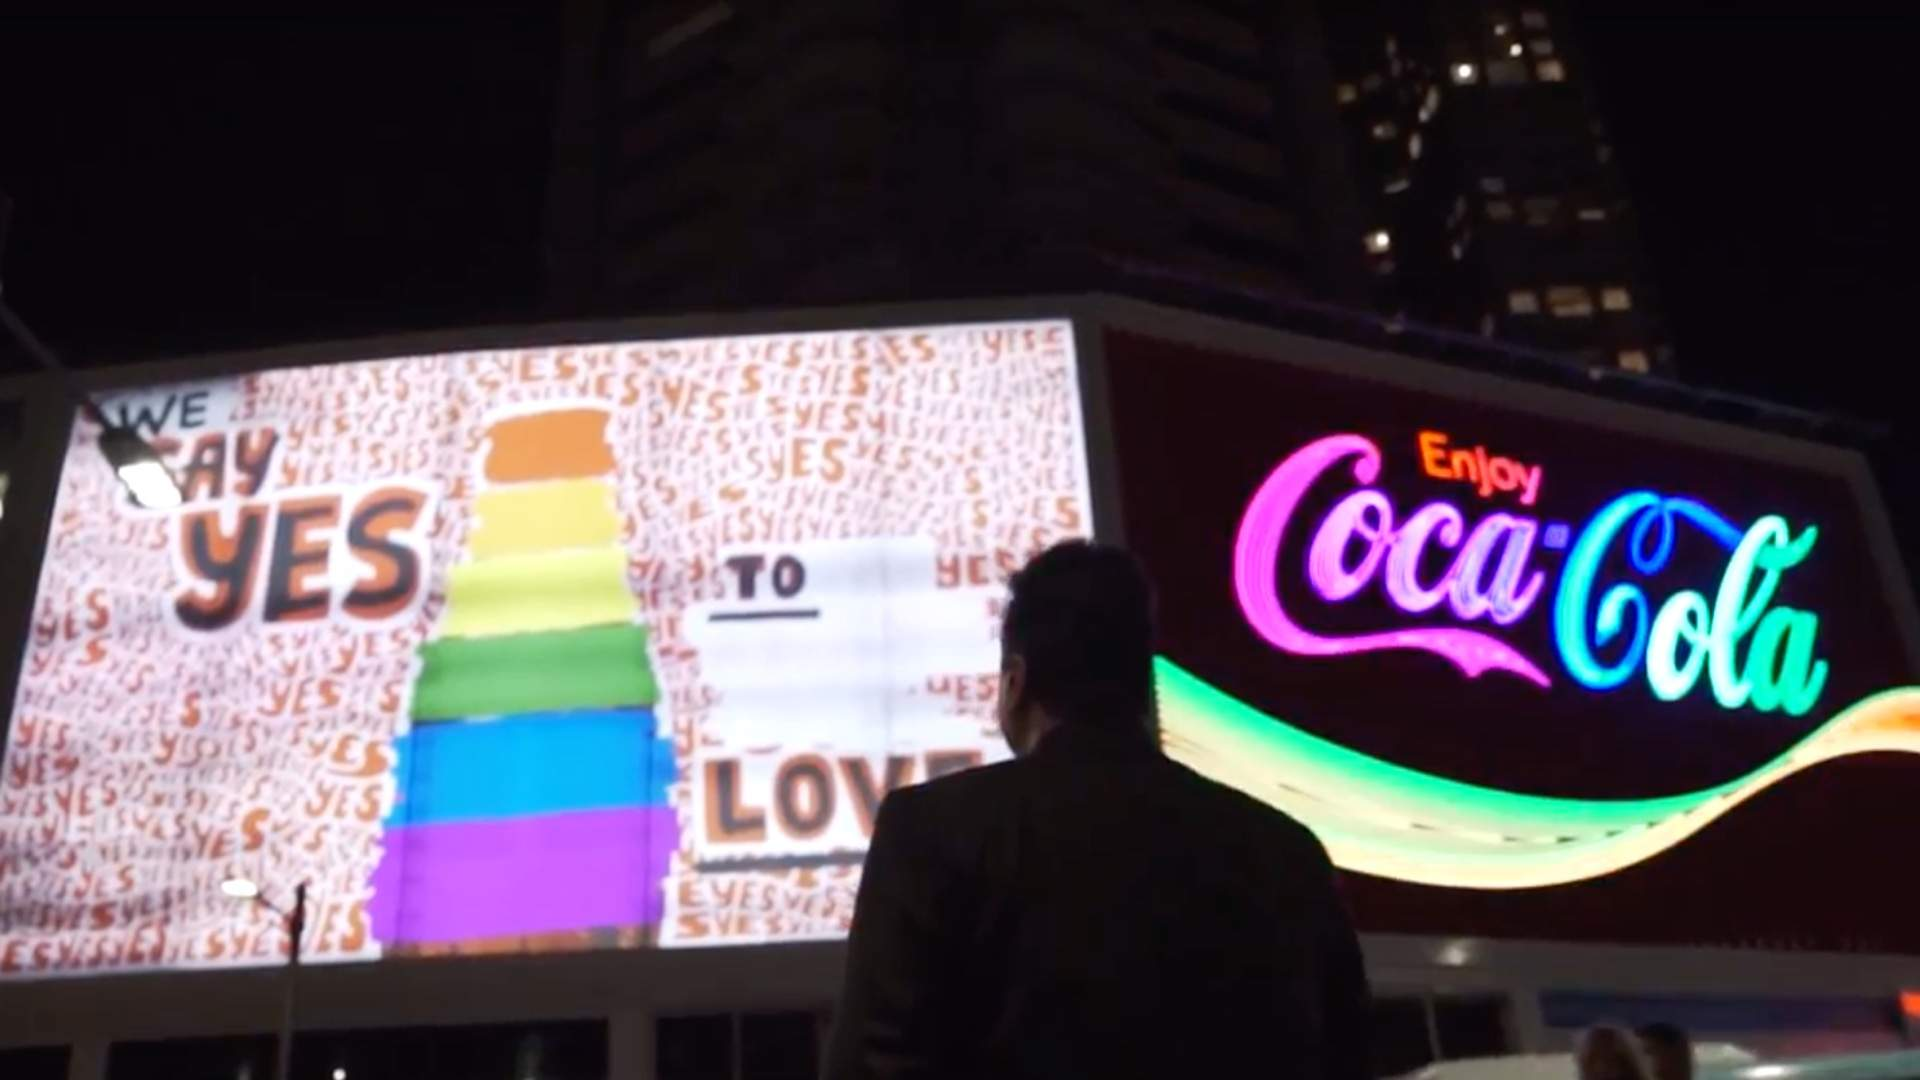 This New Documentary Investigates Sydney's Nightlife in Light of the Lockout Laws